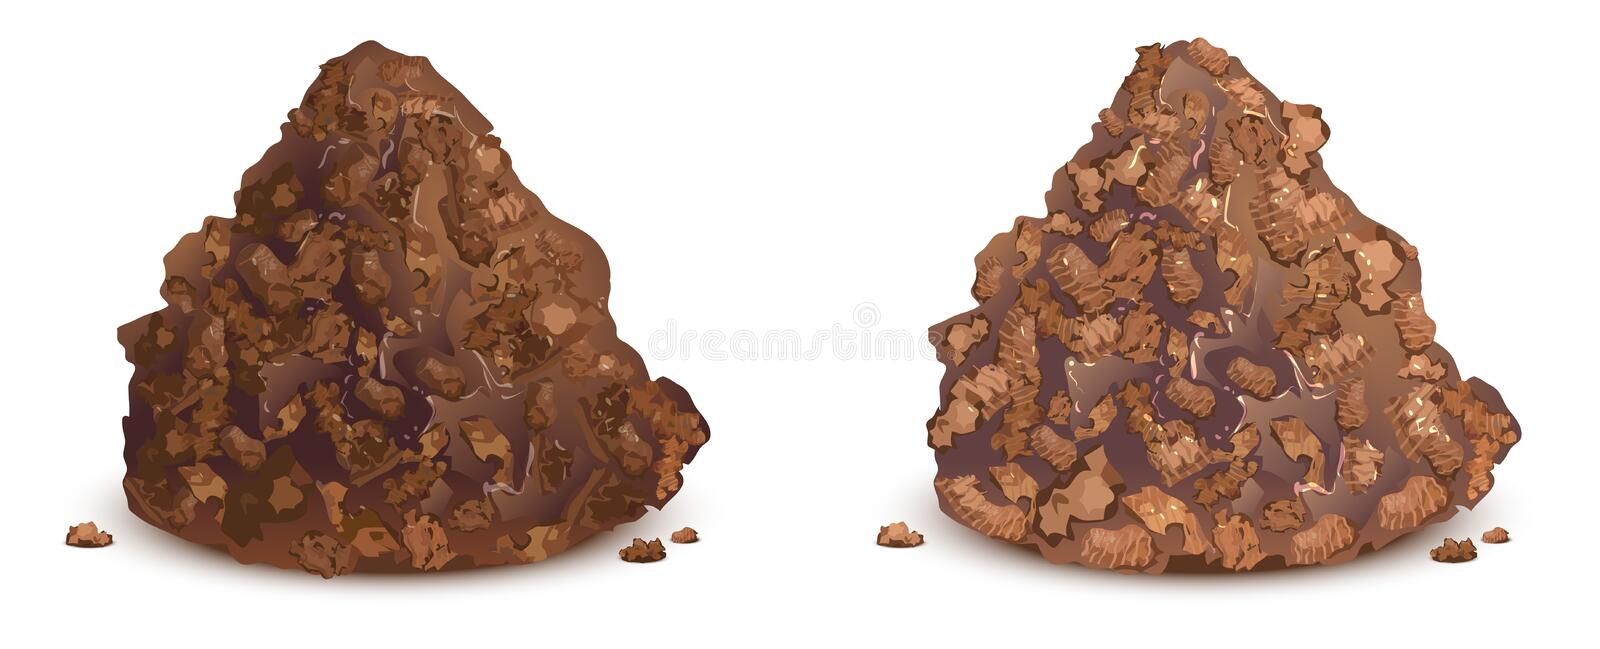 Chocolate candy brown truffle with sprinkle stock illustration